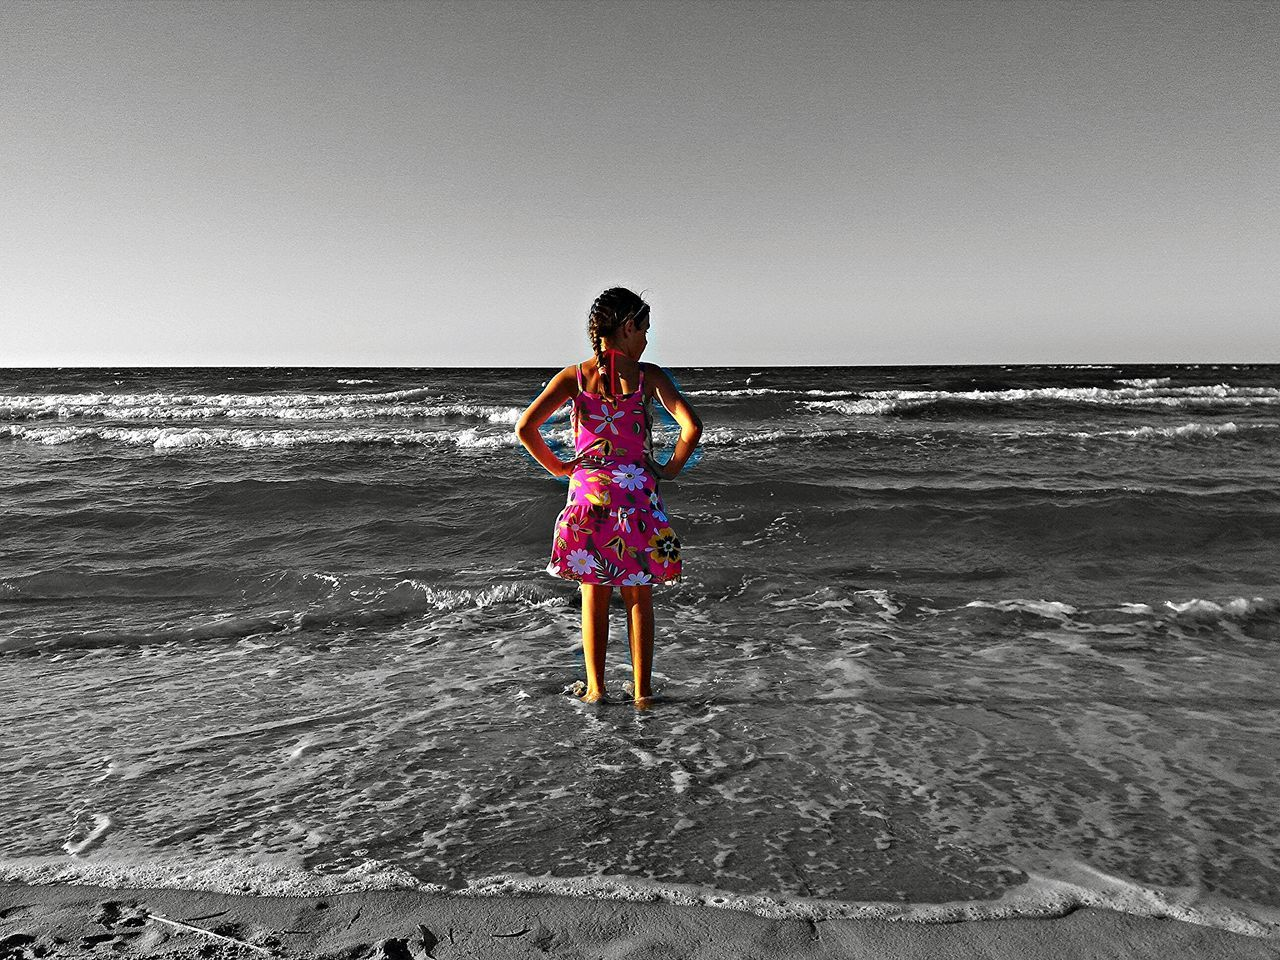 Salento, Italy Child Photography Black&white Background Subject In ColourBeachphotography SeaBeach Photography Beach Beach Waves Beachtime Beach